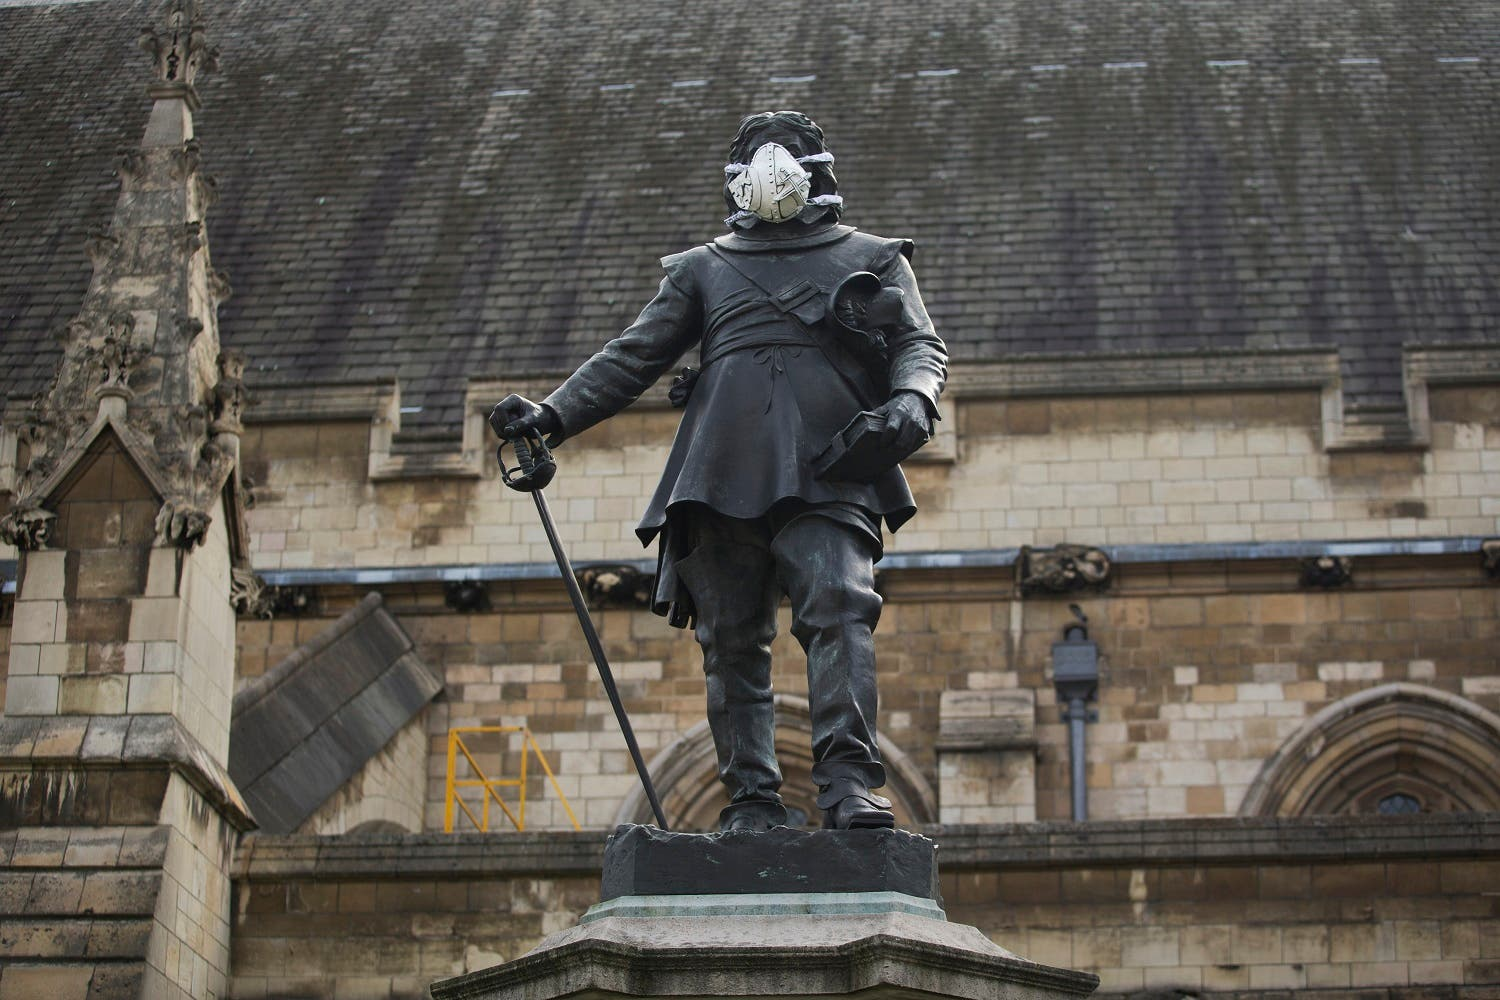 A clean air mask is seen placed on the face of the Oliver Cromwell statue outside the Houses of Parliament by Greenpeace activists to protest against air pollution quality in London (Photo: AP)